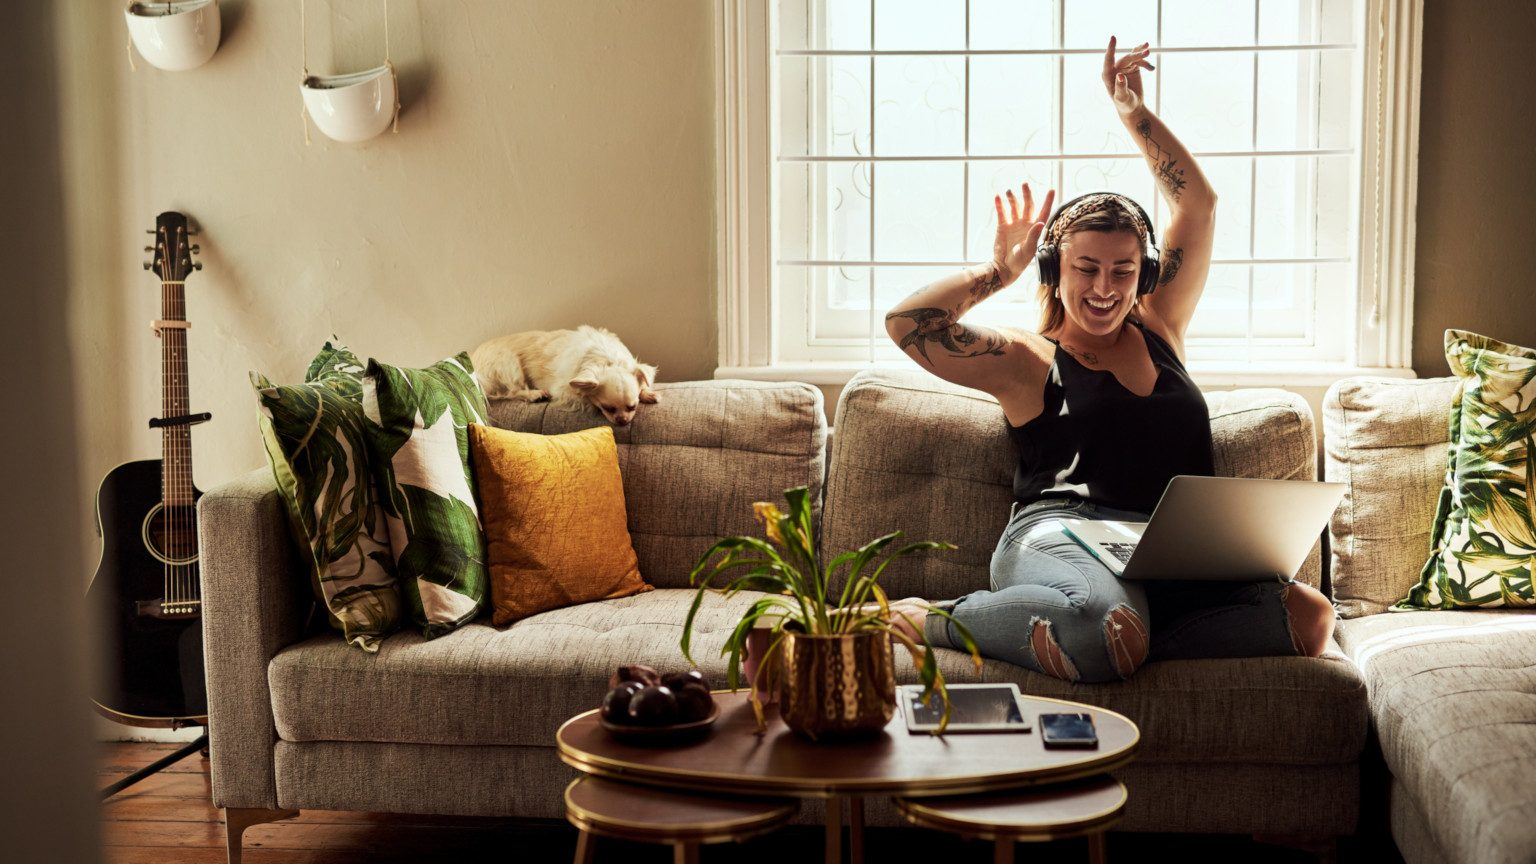 Woman sitting on her couch with laptop on headphones with her hands in the air